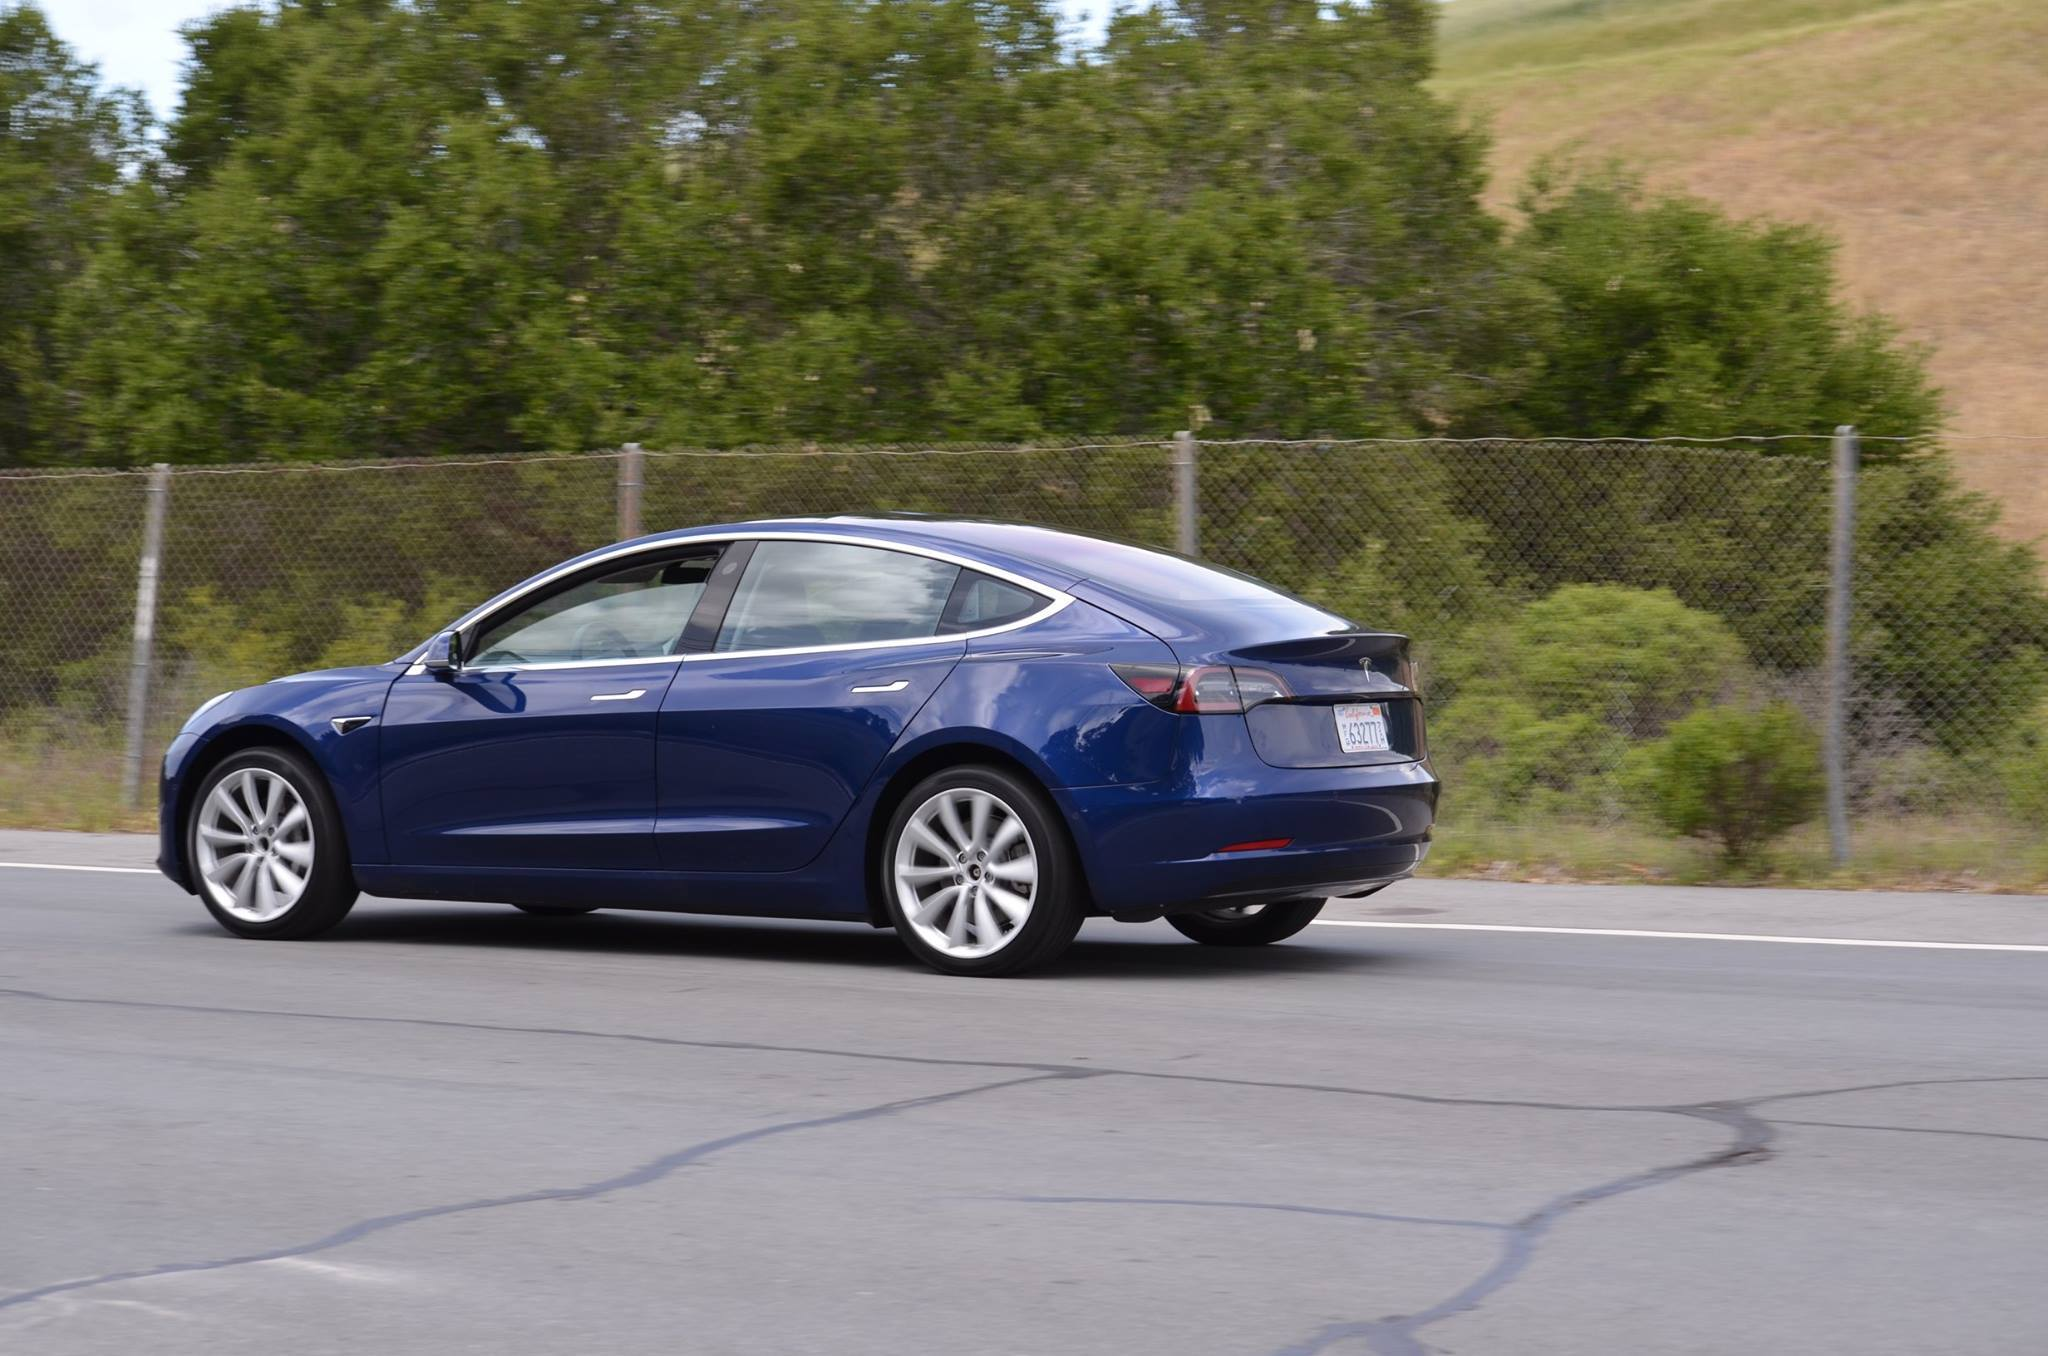 Tesla Inc (TSLA) Model S Loses Consumer Reports Top Safety Rating